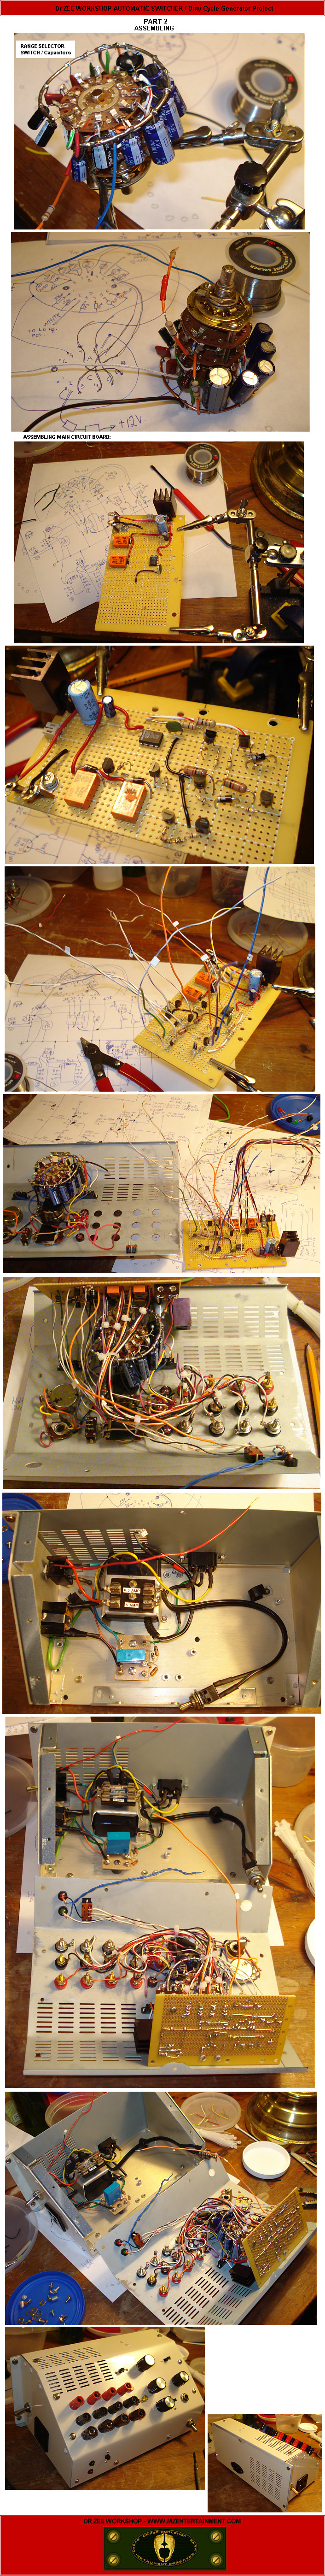 Mze Electroarts Entertainment Dr Zee Duty Cycle Selector Electronics Project Workshop Automatic Switcher Assembling